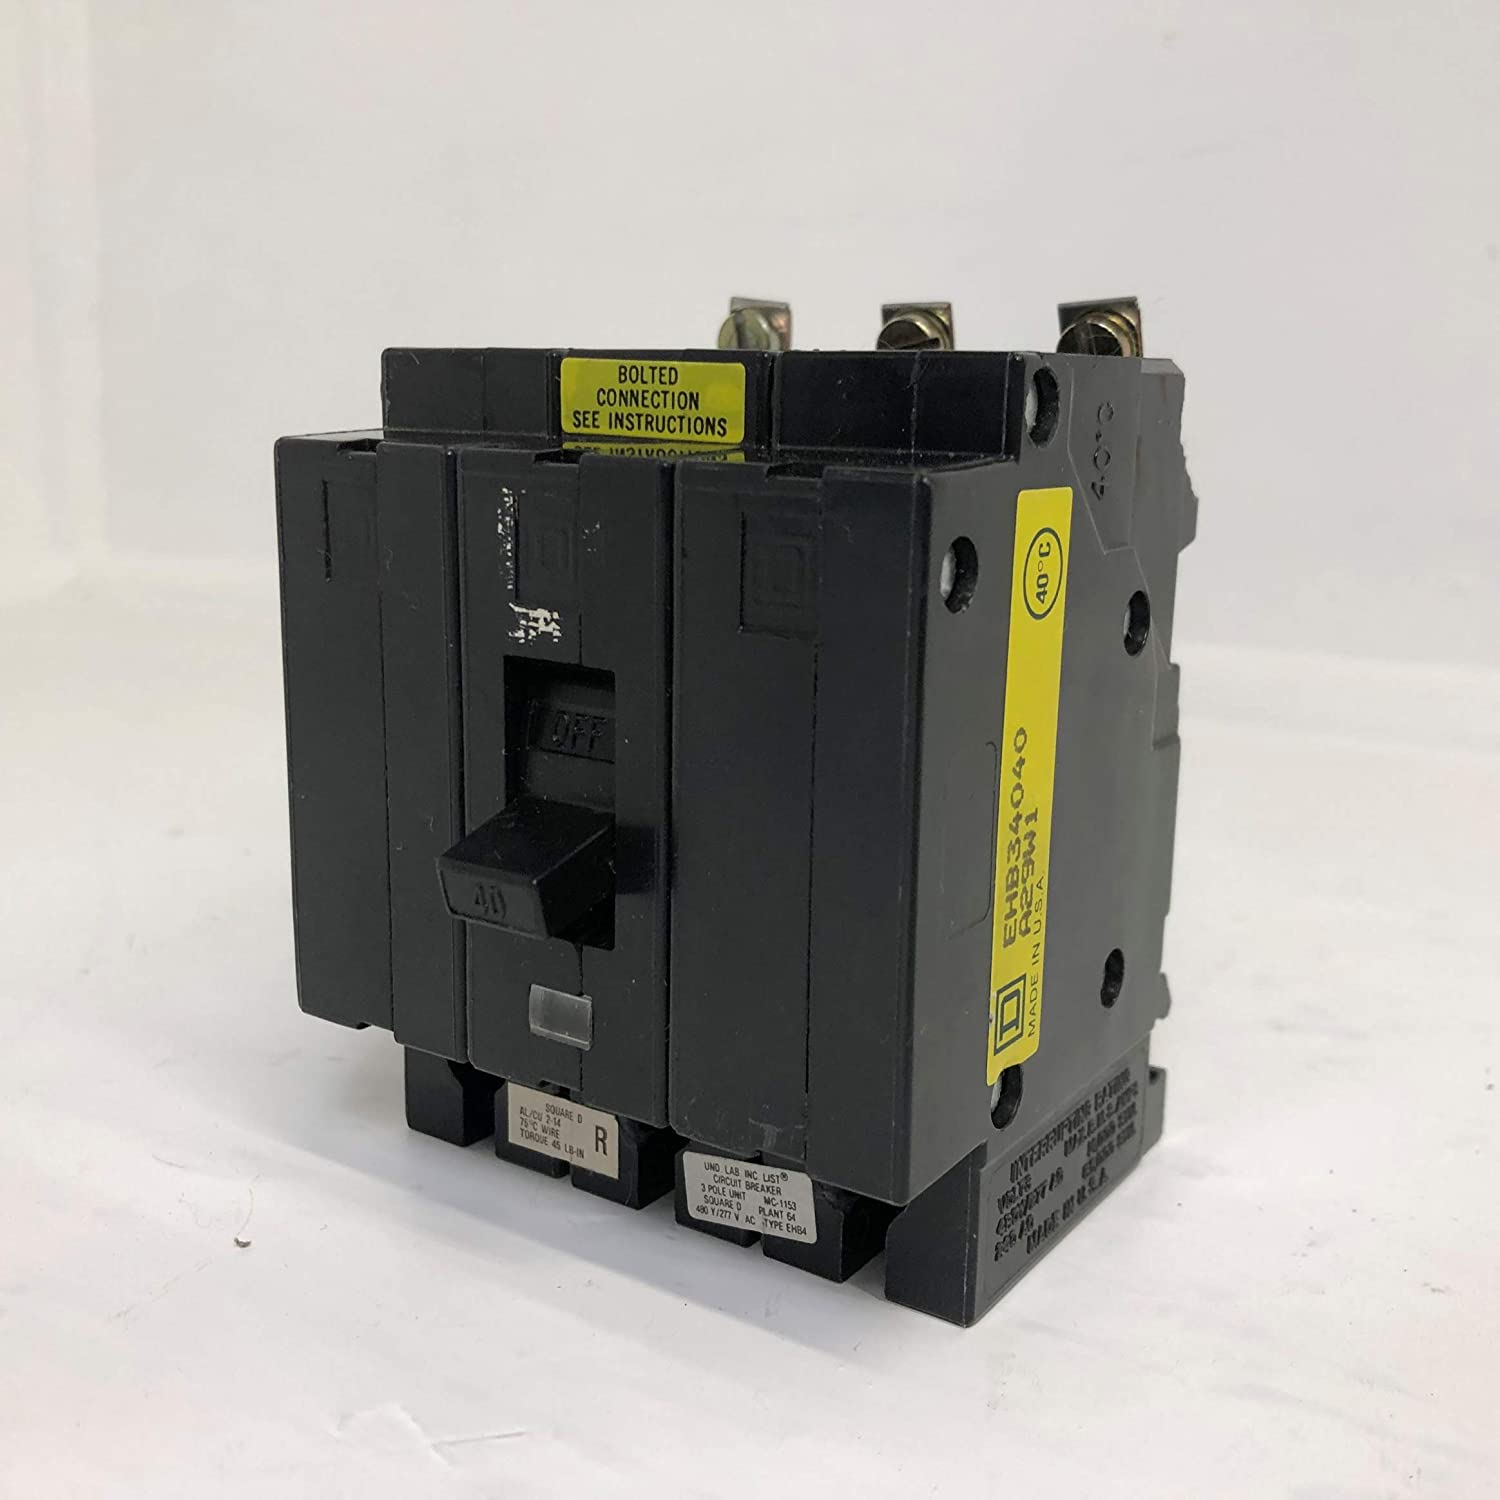 Bolt-on type panelboard branch breaker by SQUARE D EHB34040